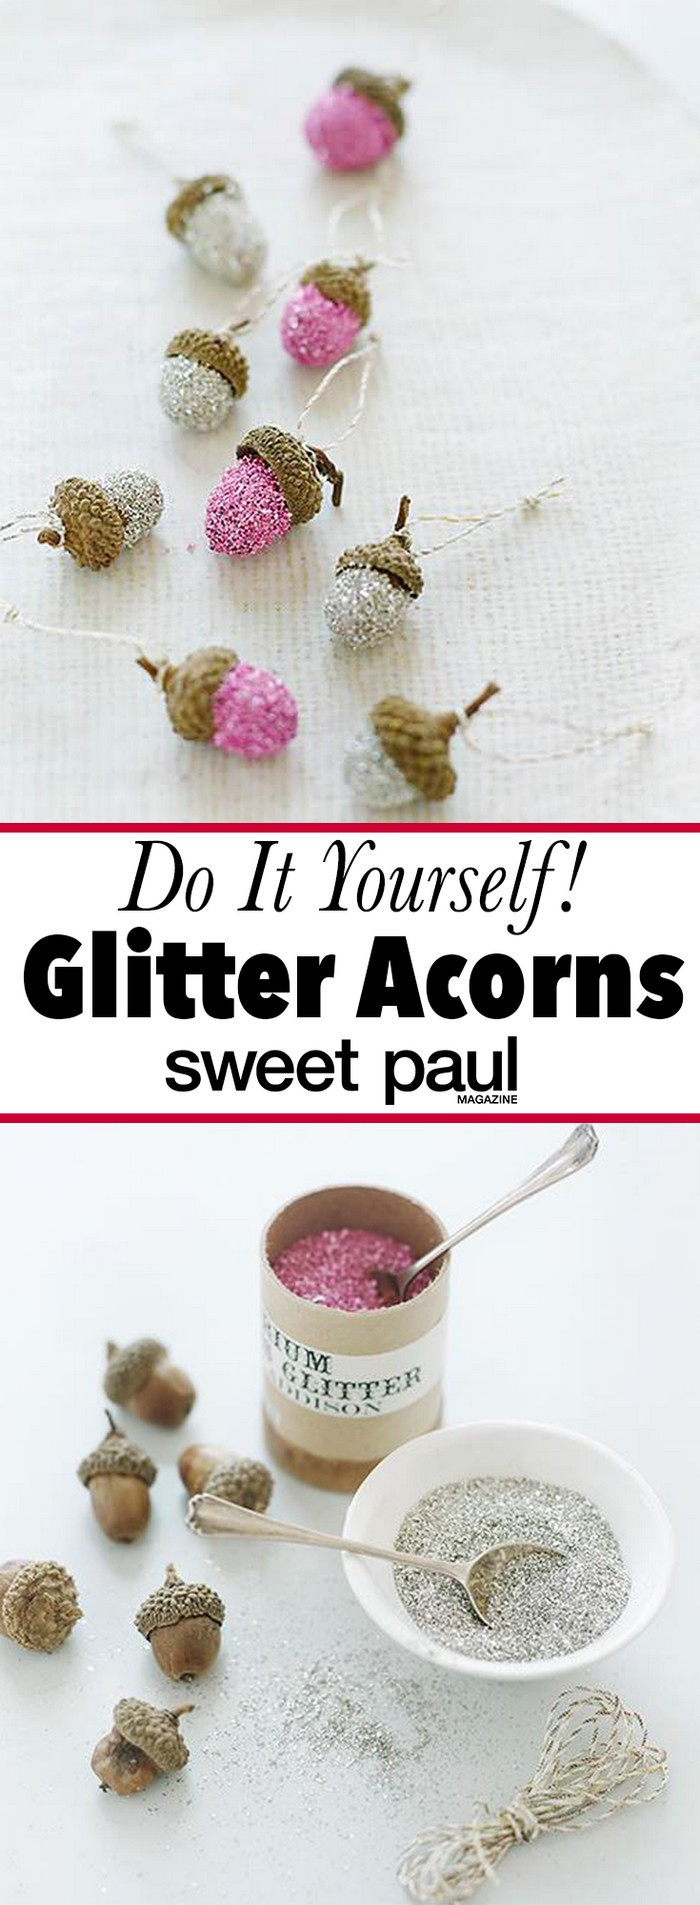 Glitter Acorns 25 Interesting Ideas to Make Easy Christmas Crafts